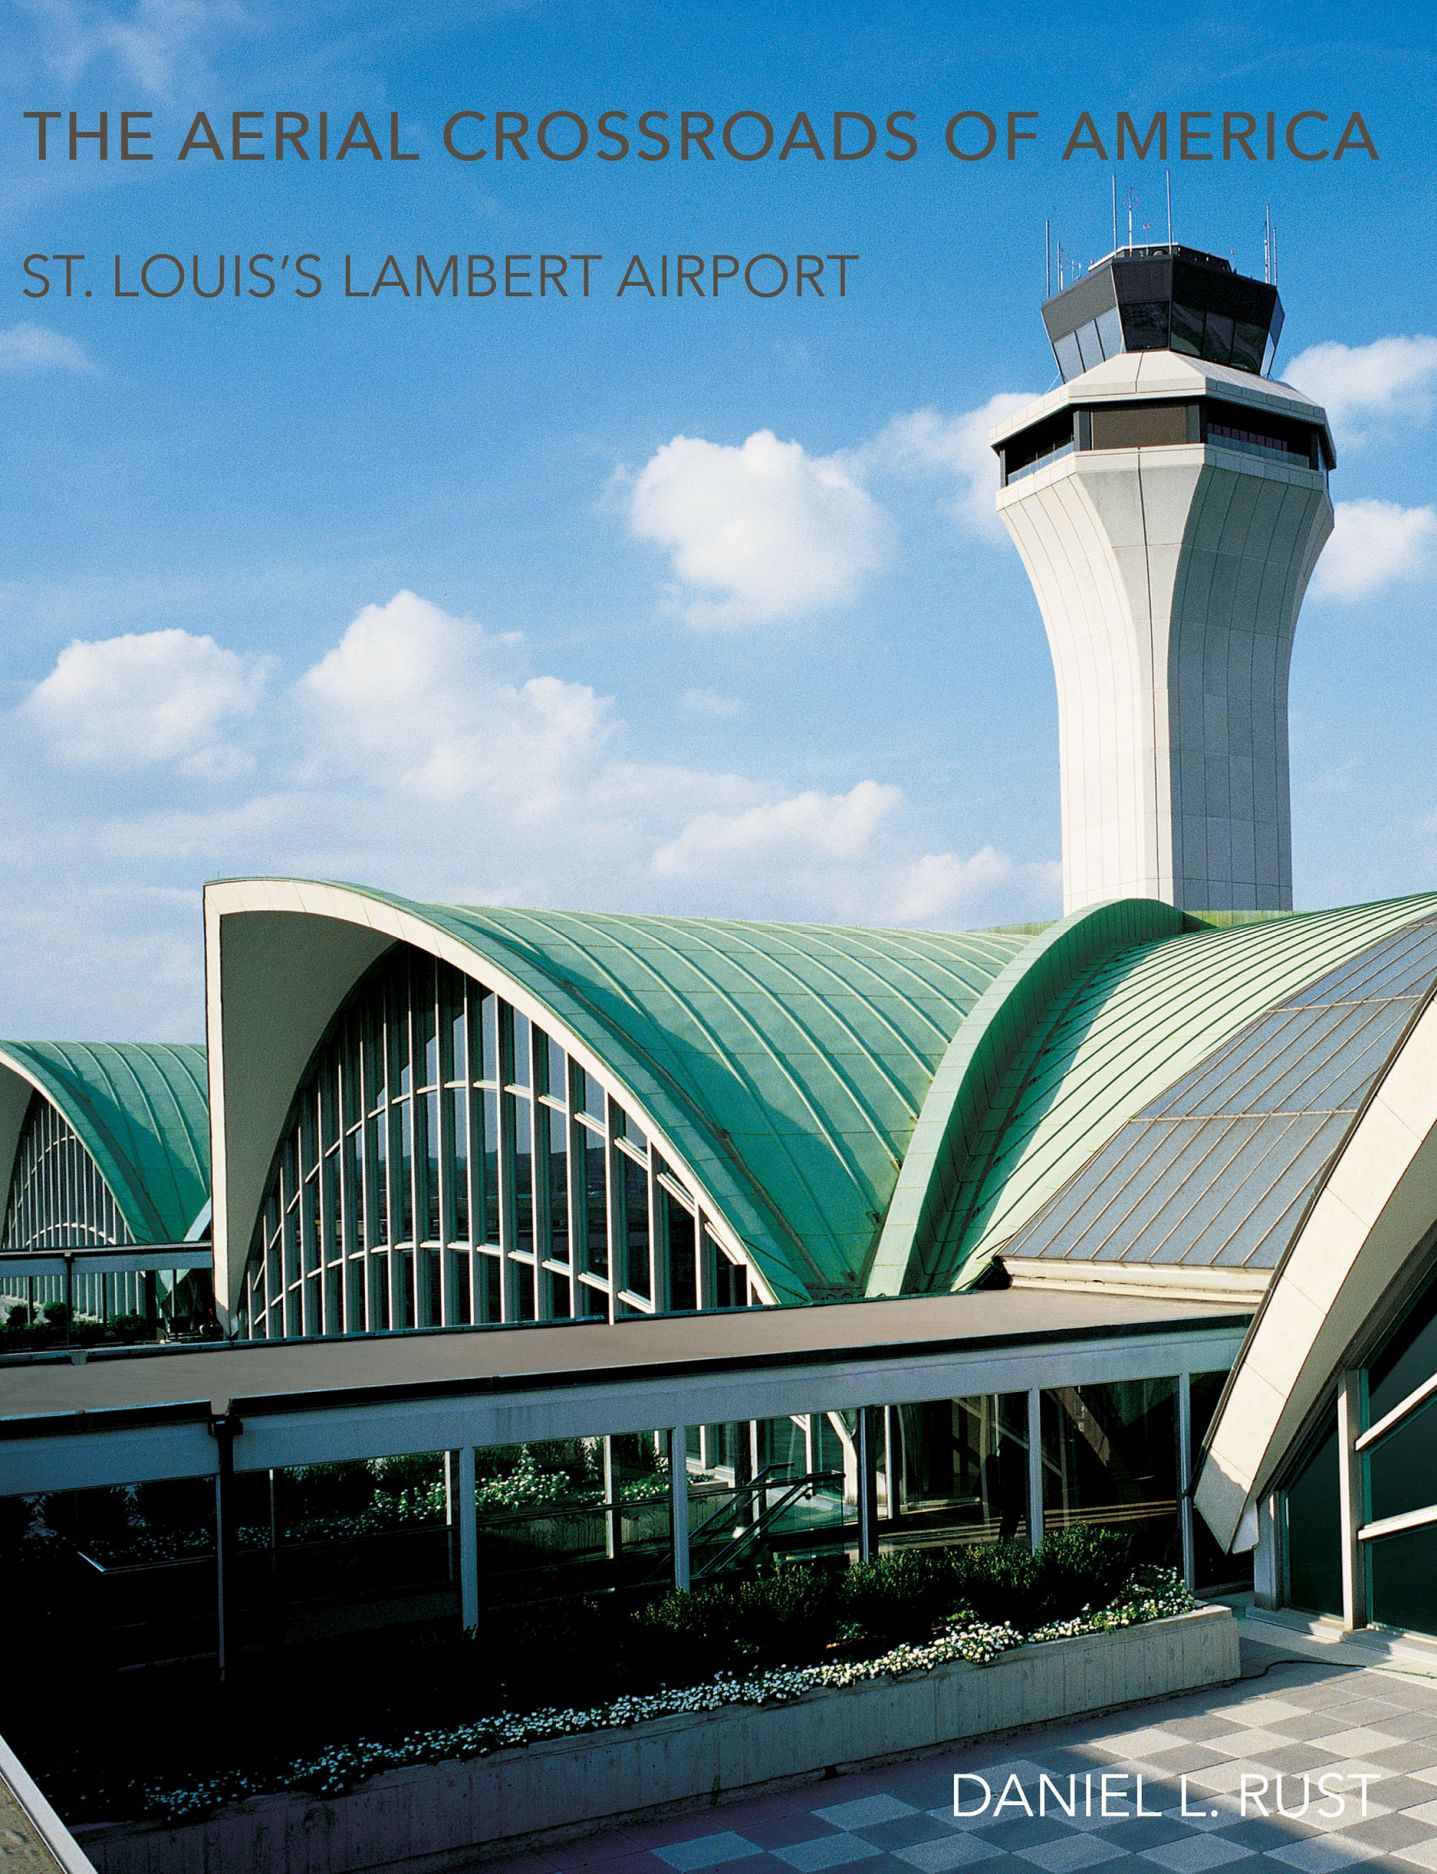 The Aerial Crossroads of America: St. Louis's Lambert Airport